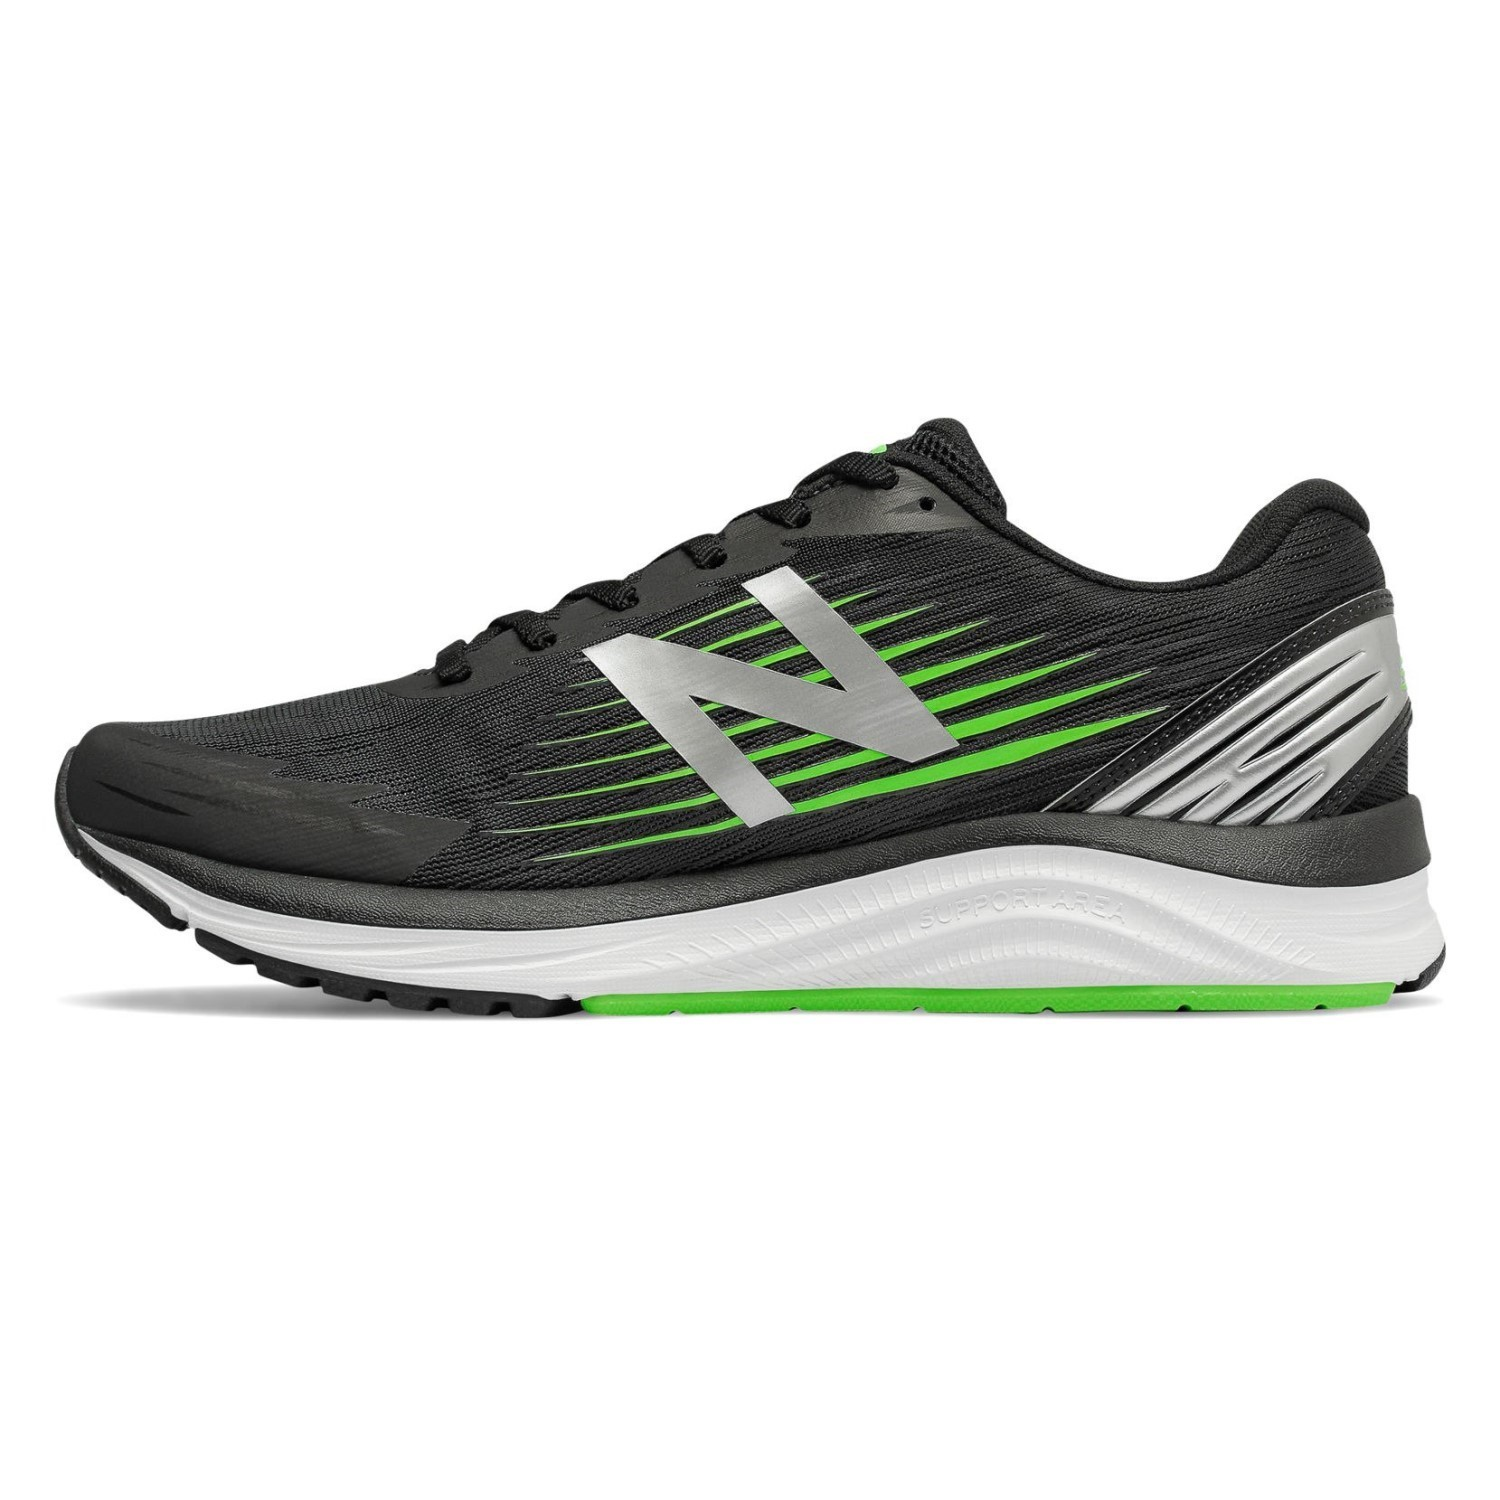 ac46f9fb89b24 New Balance Synact - Mens Running Shoes - Black/Green | Sportitude